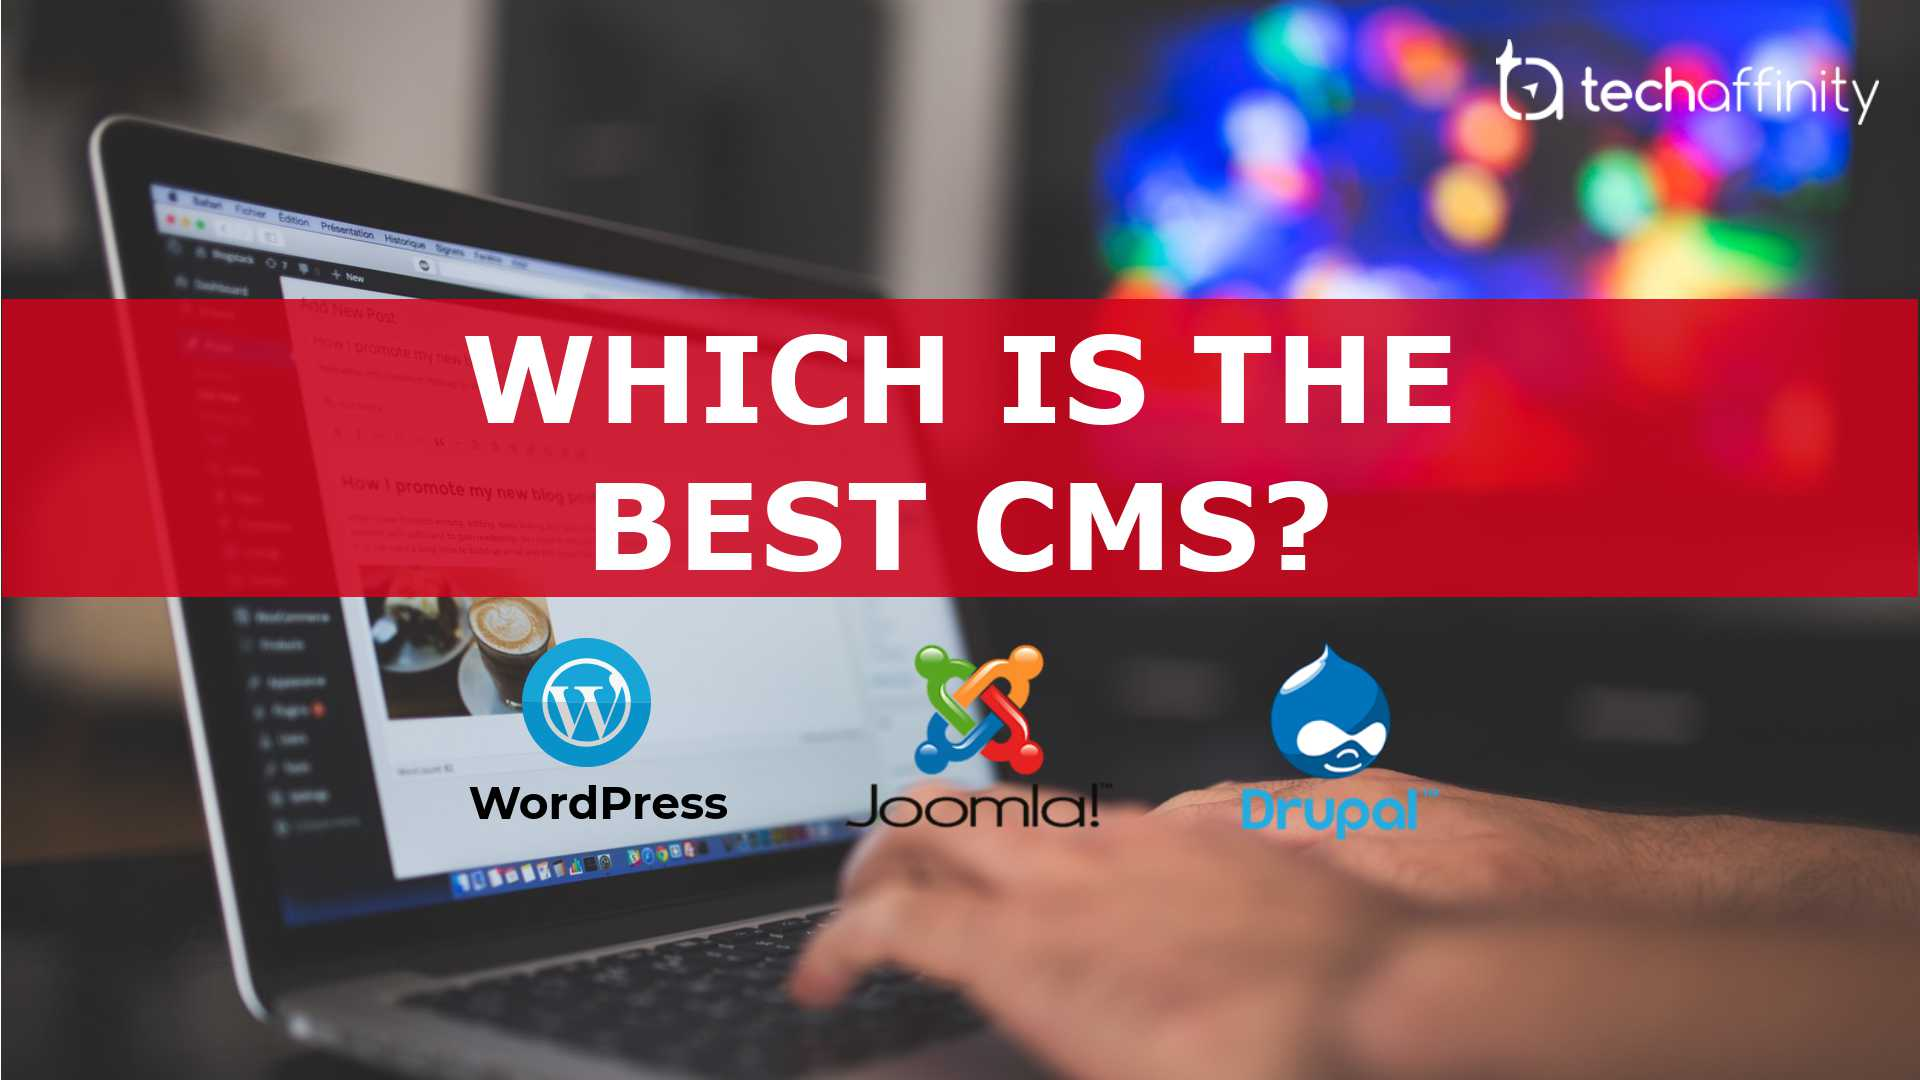 Which is the best CMS? WordPress or Joomla or Drupal